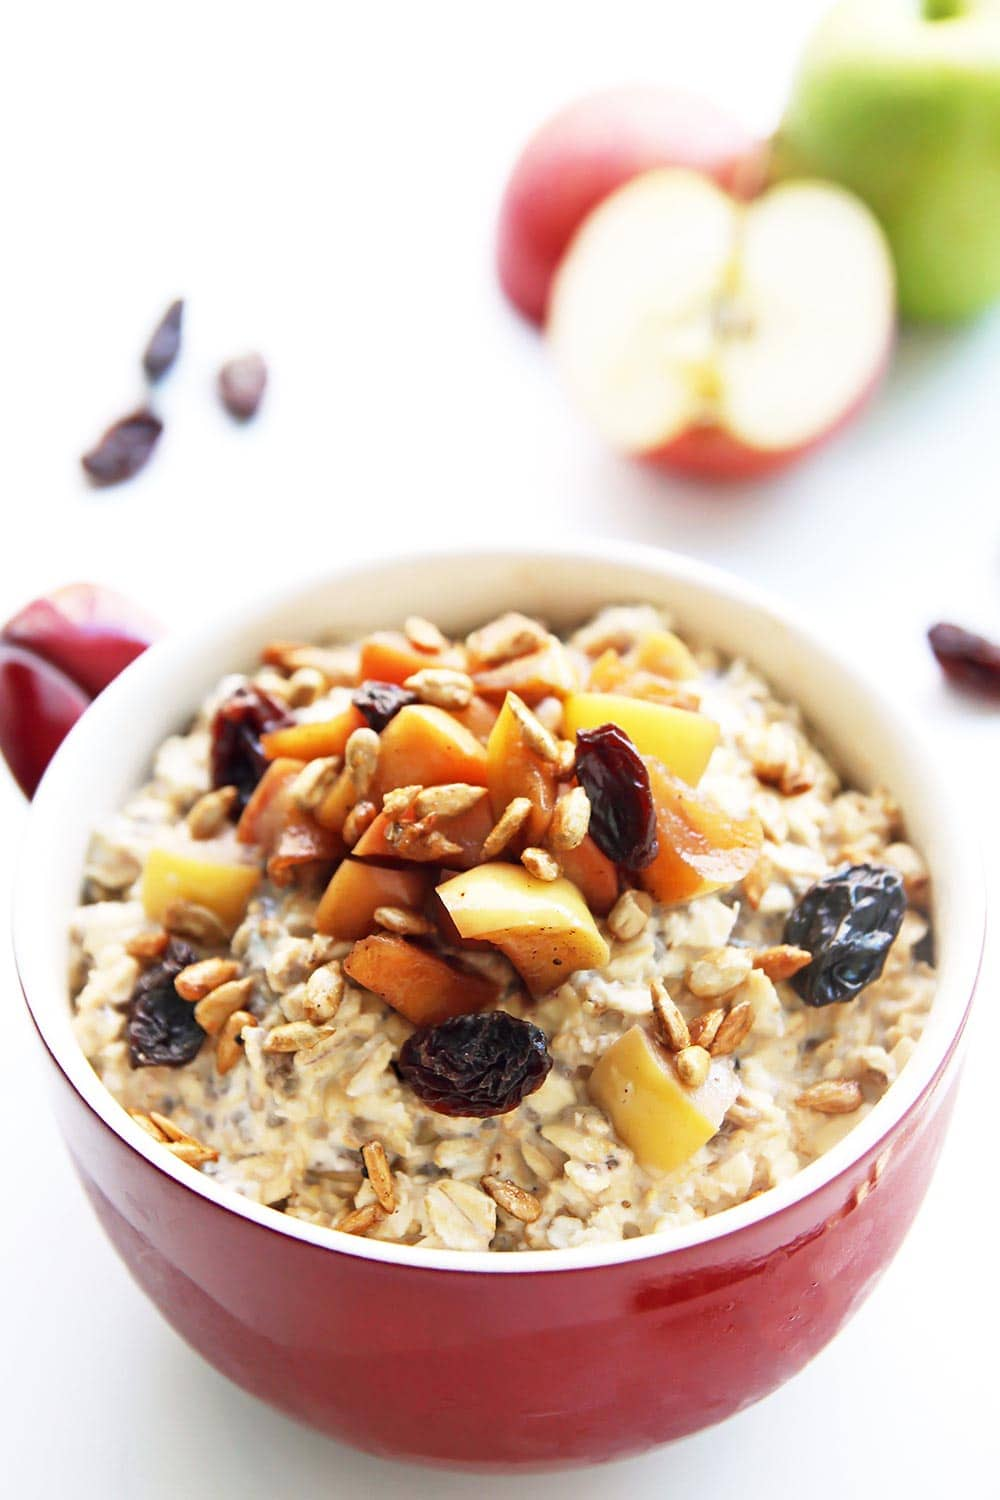 Apple Cinnamon Overnight Oats in red bowl